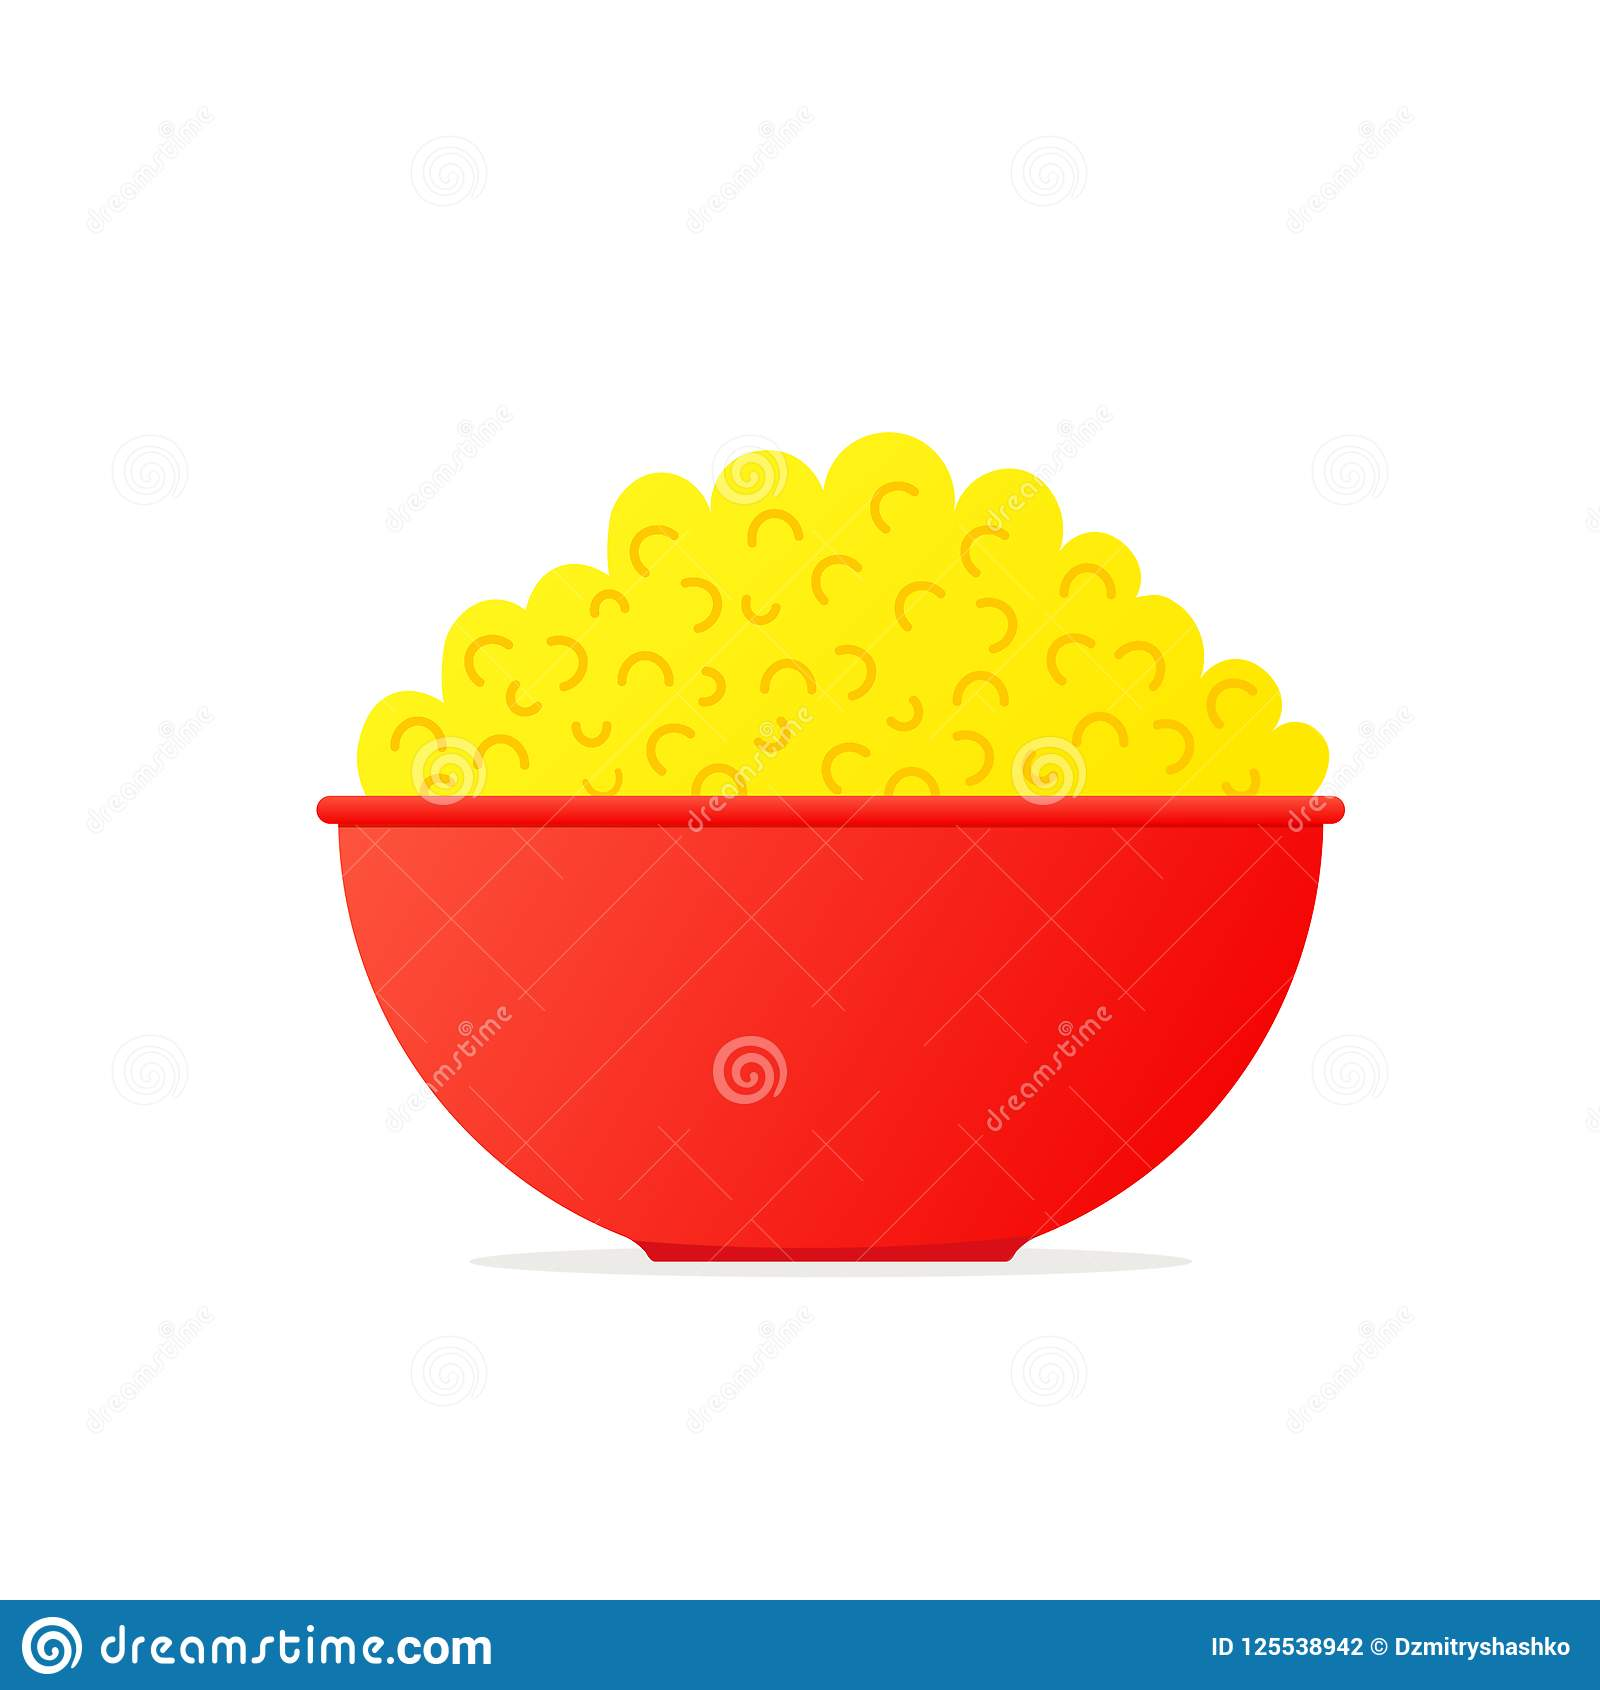 Popcorn In Bowl icon stock vector. Illustration of appetizing.